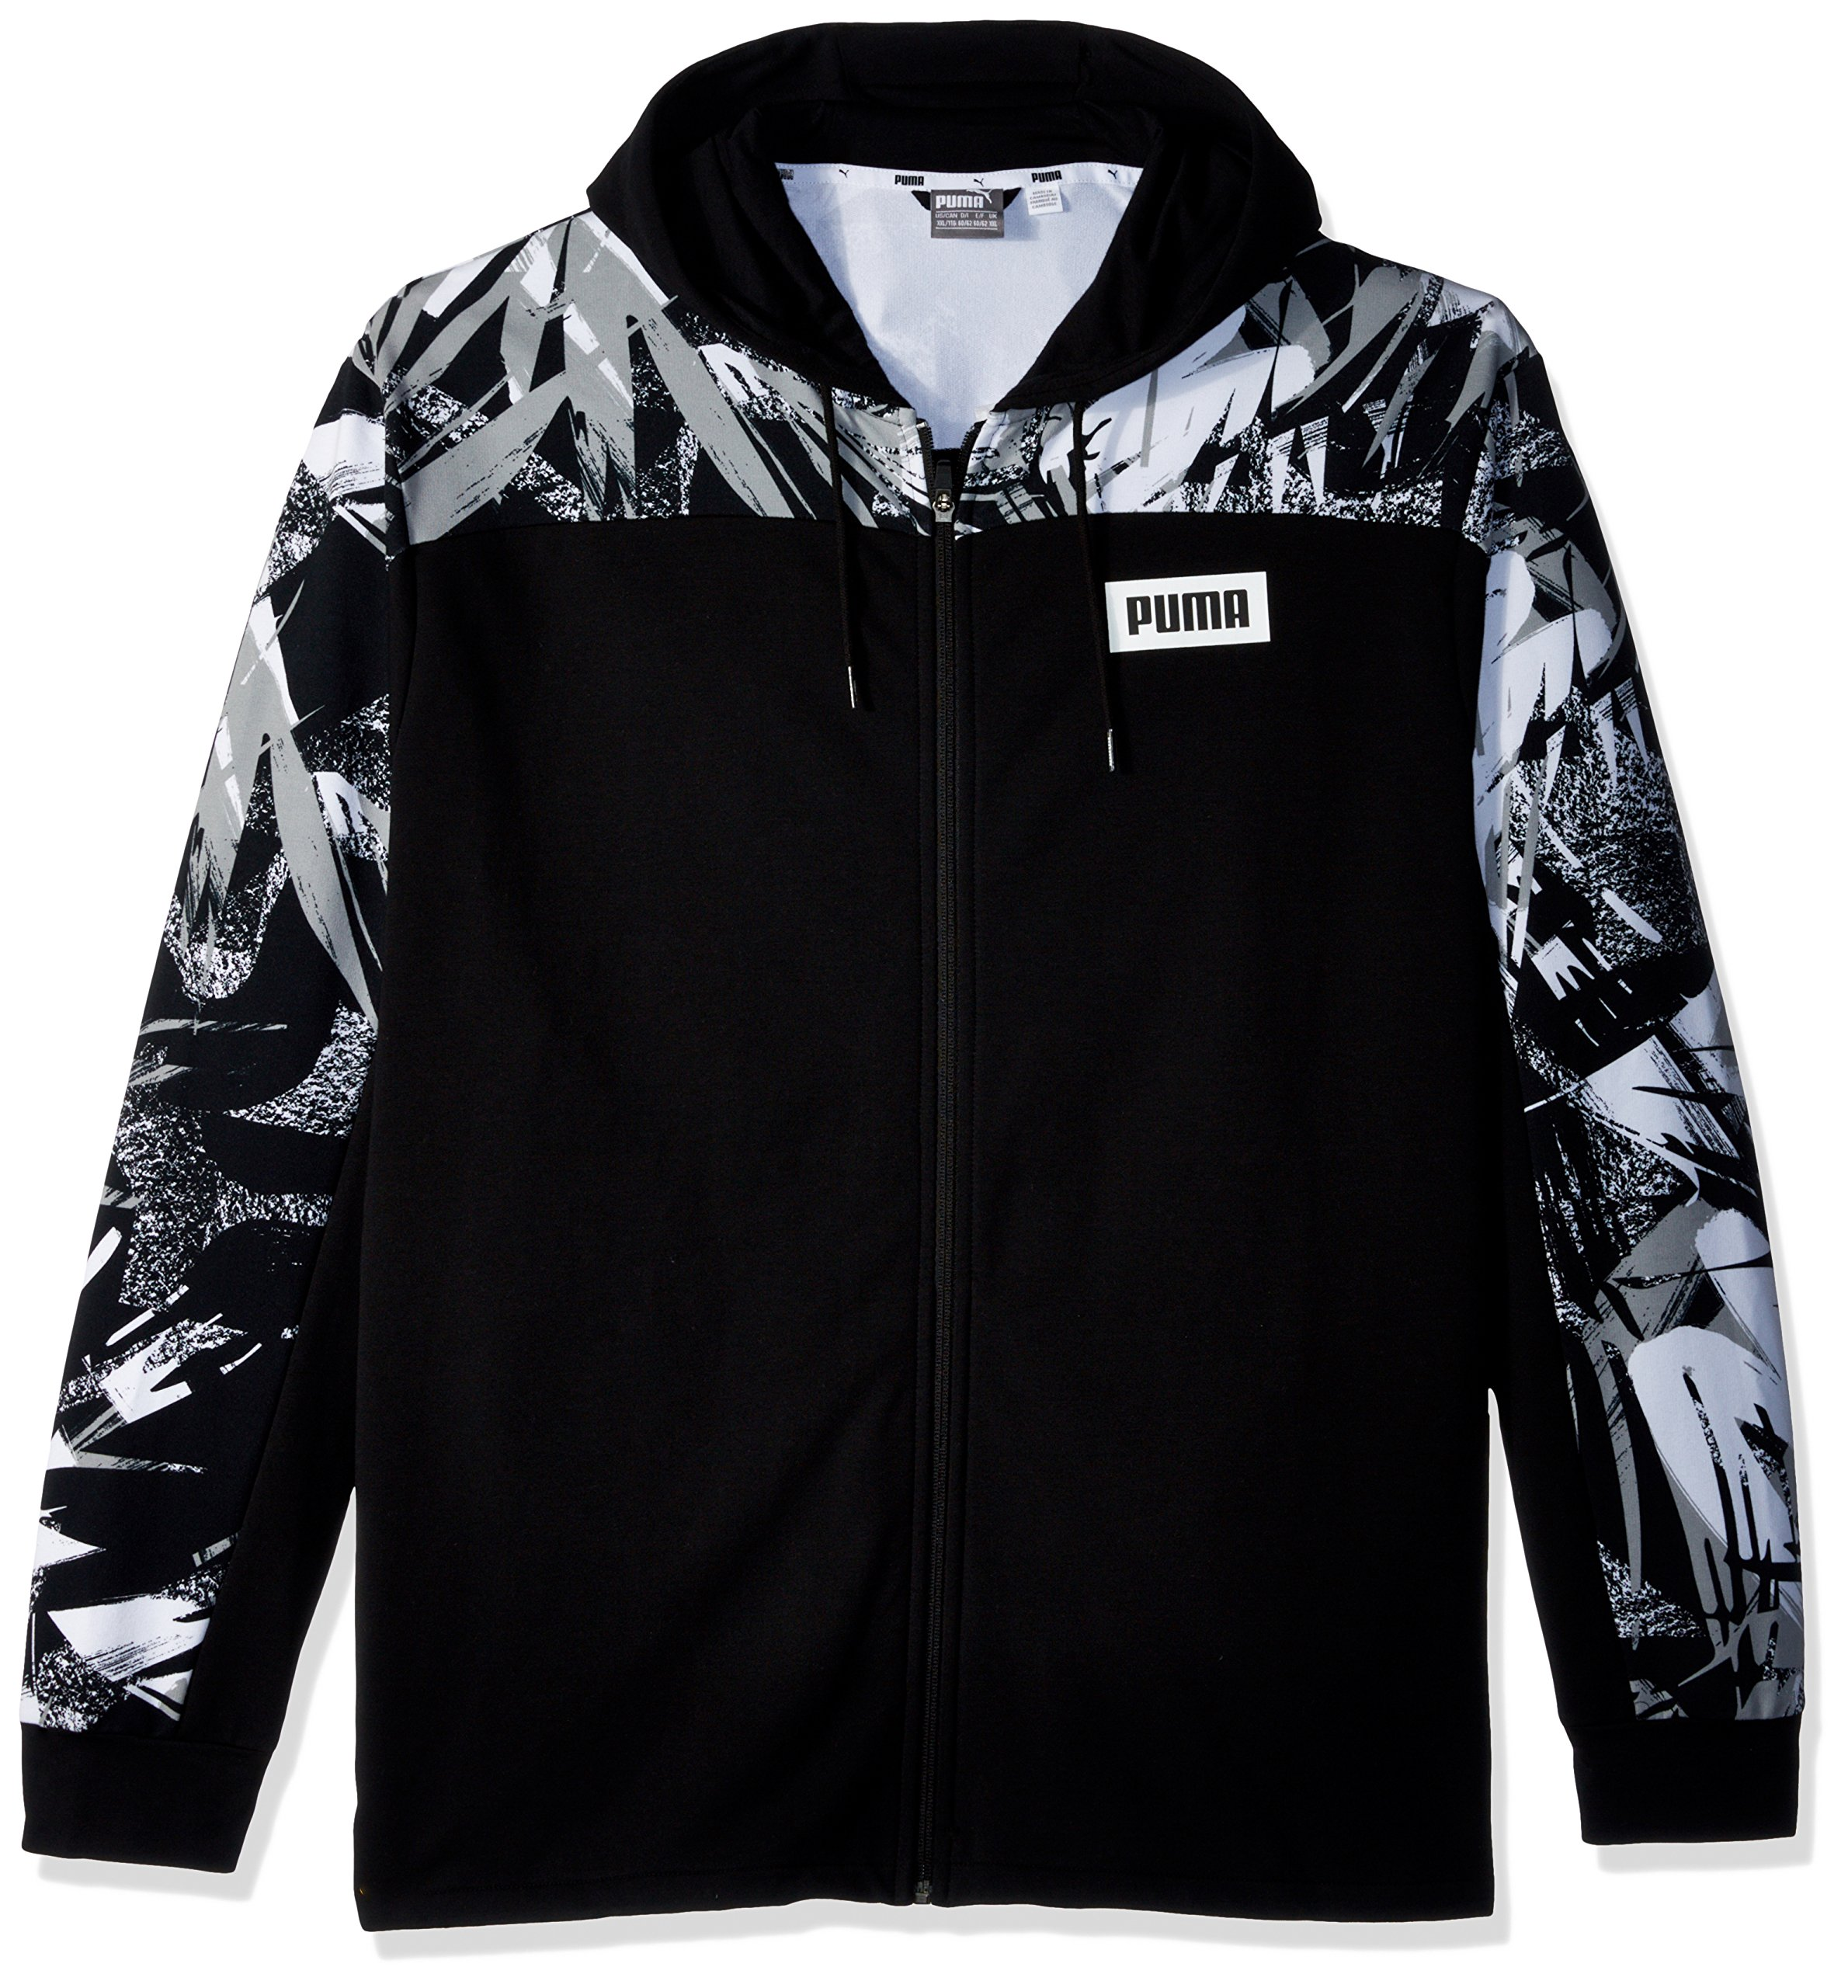 PUMA Men's Summer Pack Full Zip Hoodie, Cotton Black/All Over Print, L